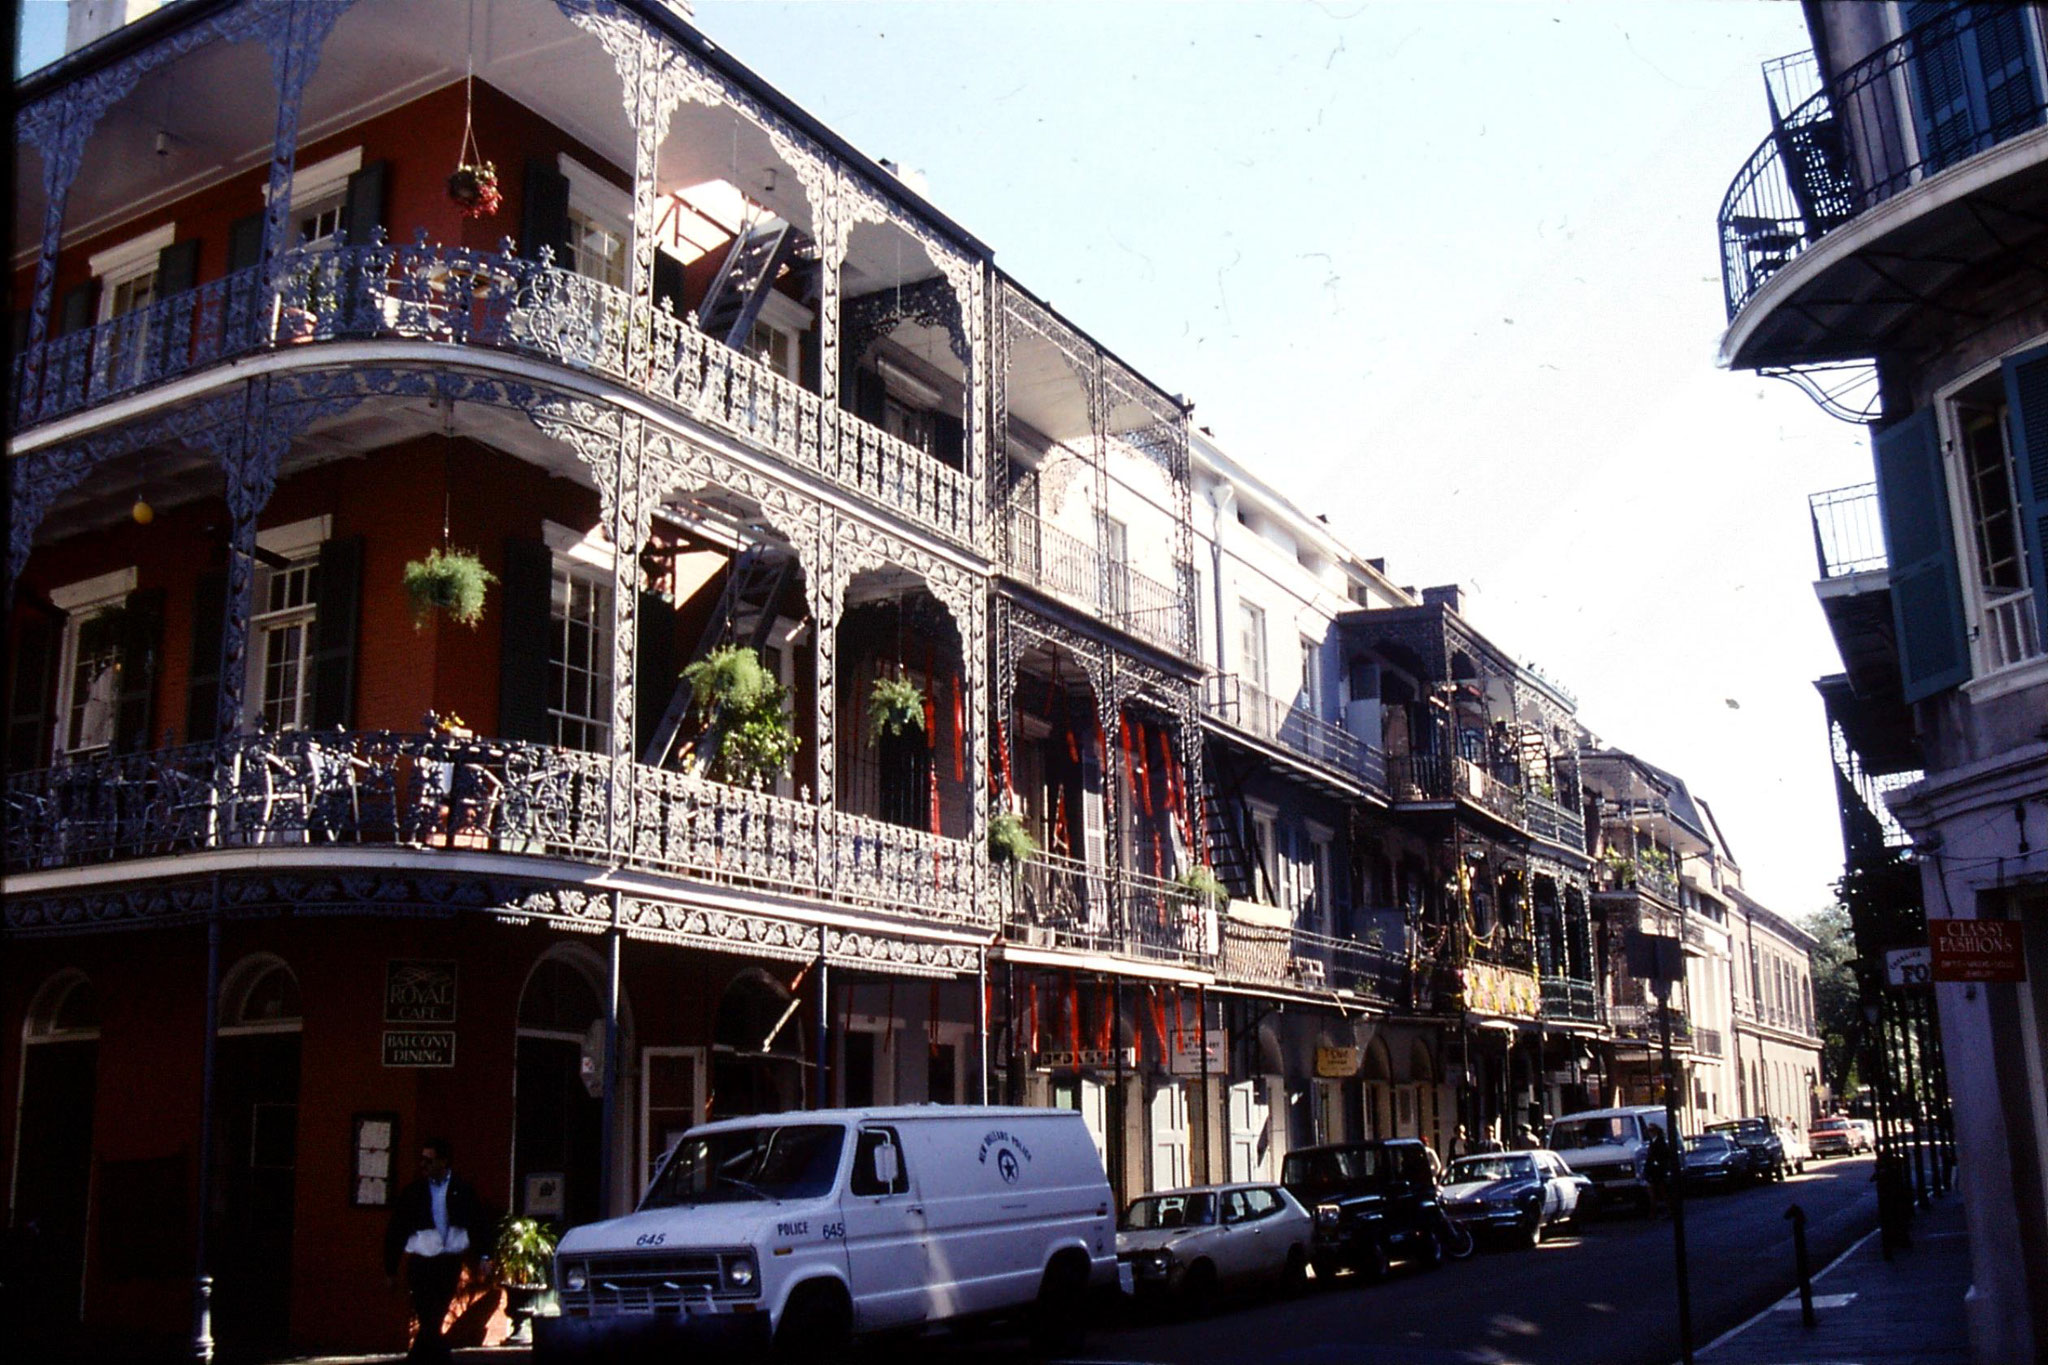 16/1/1991: 5: Old Quarter of New Orleans